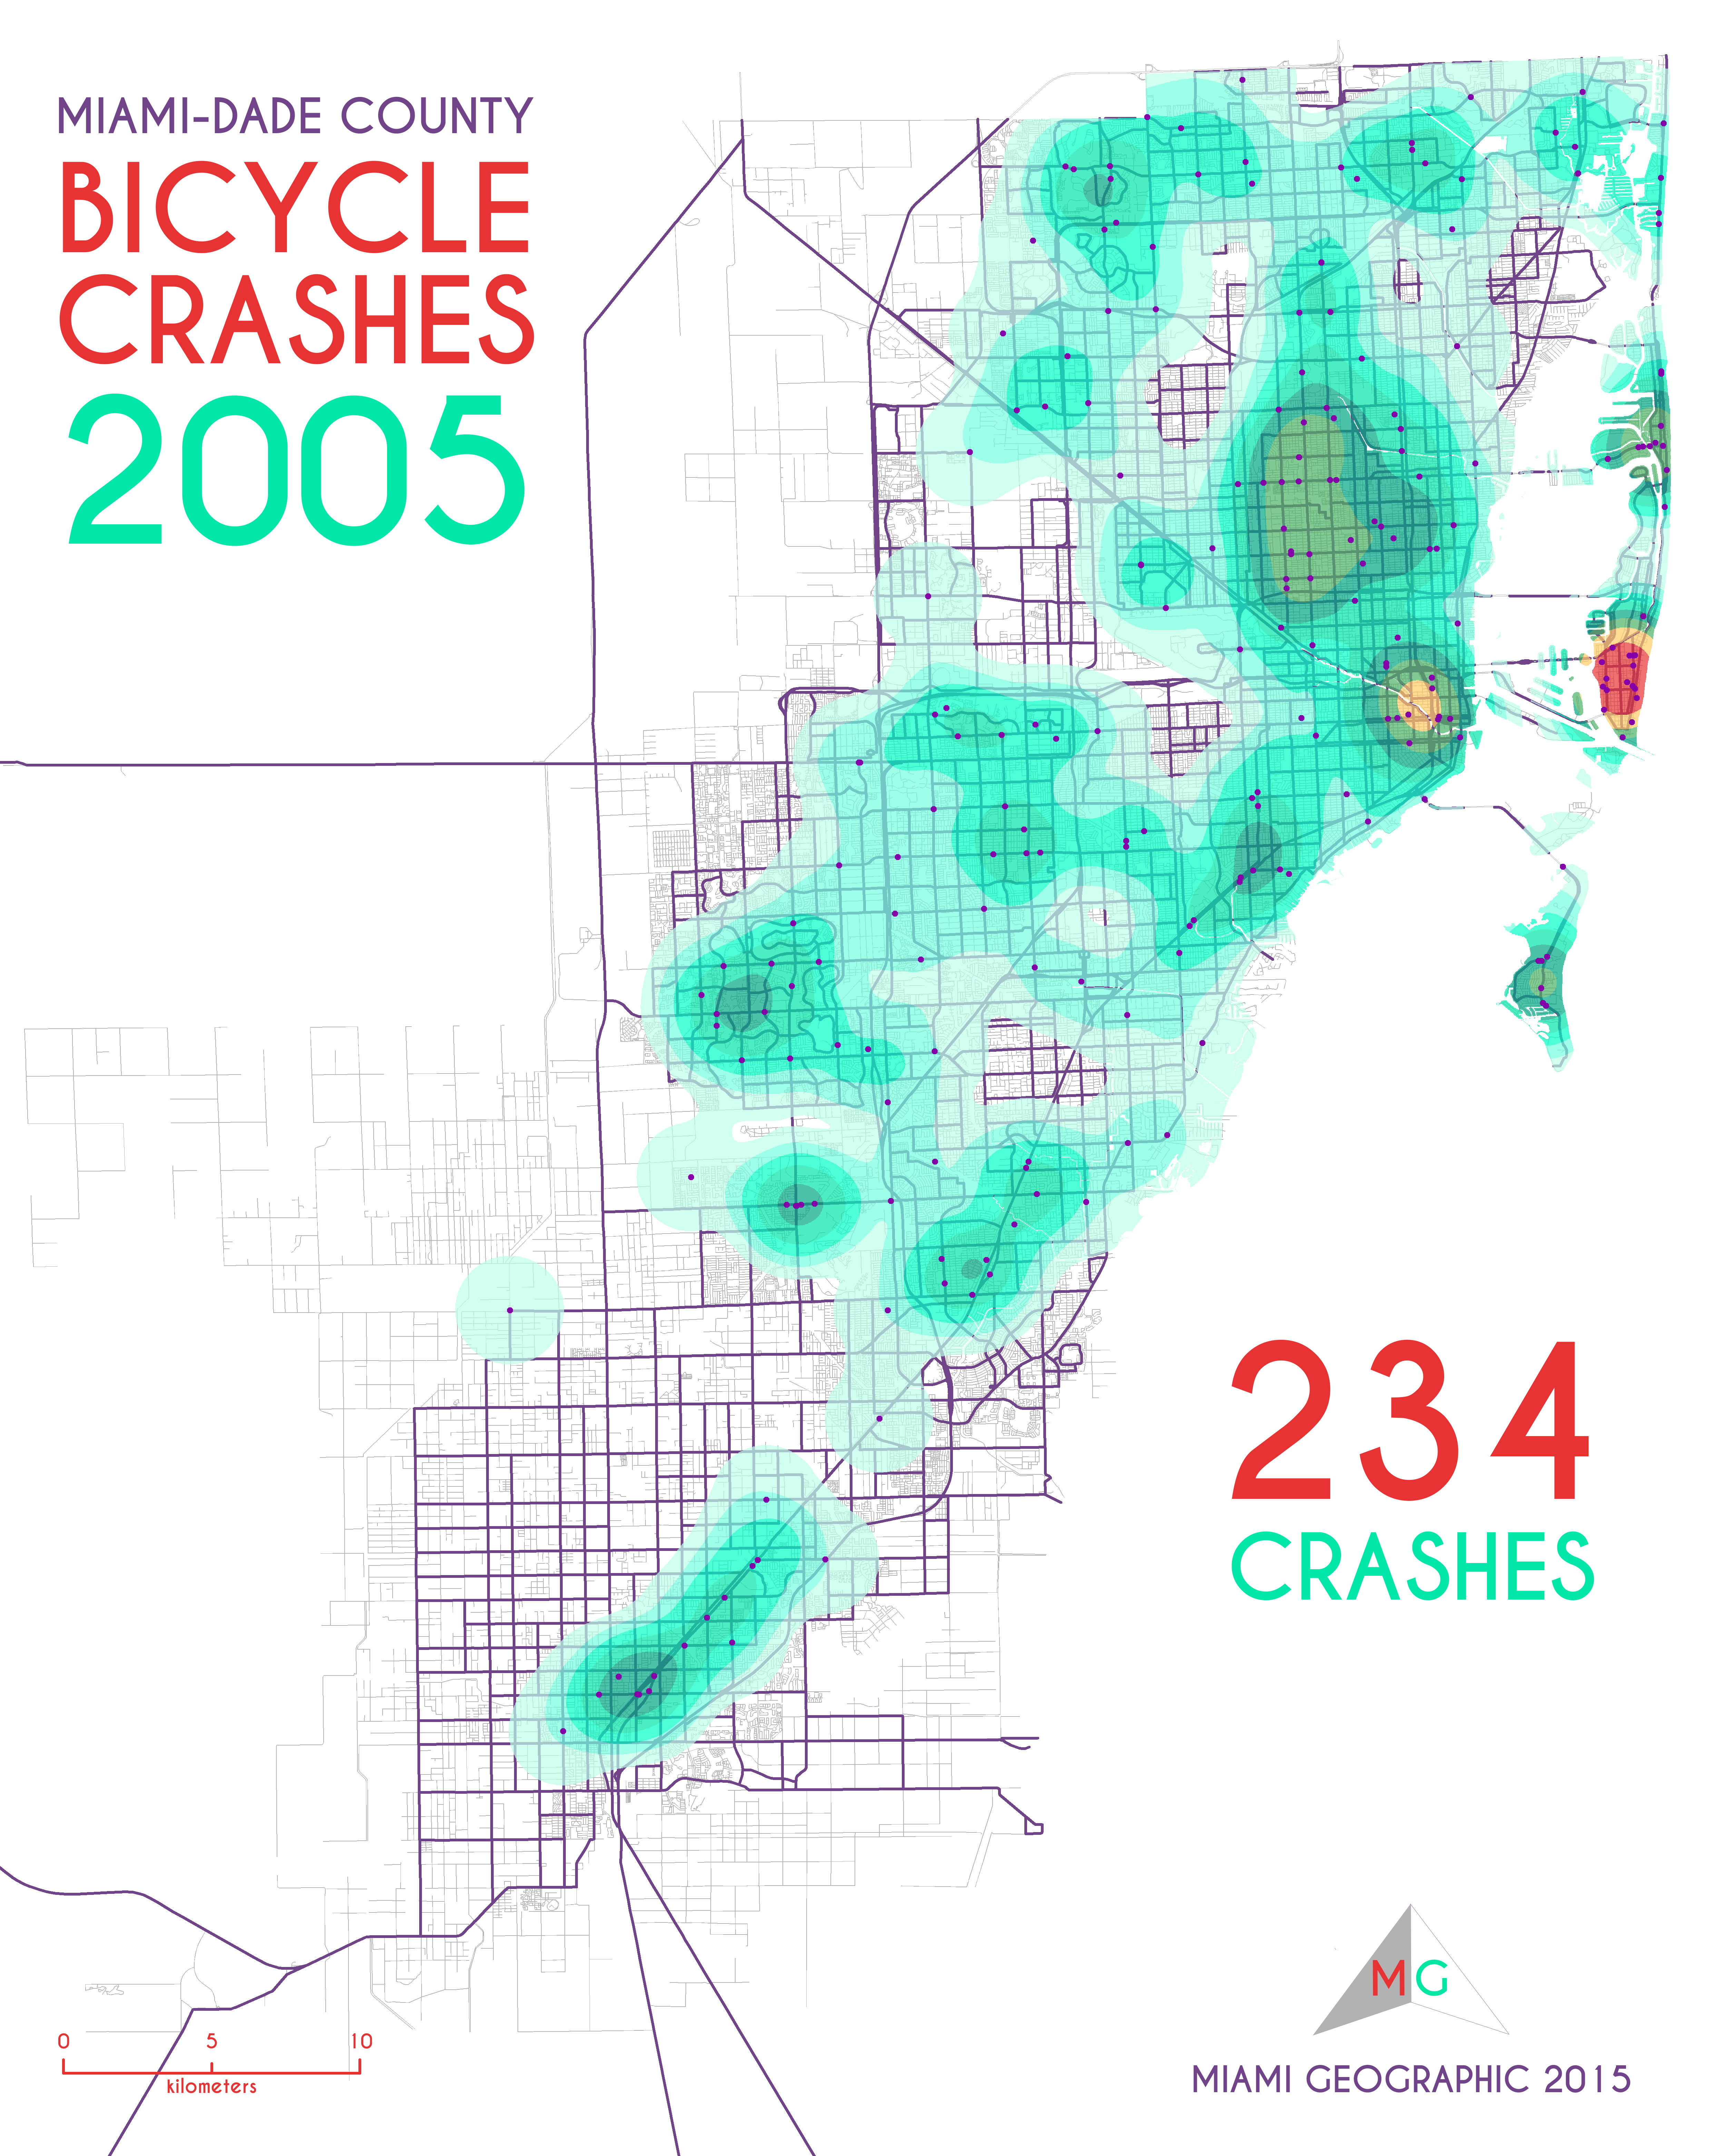 Bicycle Crashes in Miami-Dade County, 2005-2013 | Miami ... on saint johns county road map, knox county road map, weston county road map, davie road map, escambia county road map, miami-dade county gis map, saint lucie county road map, st. petersburg road map, miami-dade municipalities map, dade county city map, contra costa county road map, sumter county road map, miami-dade area map, alameda county road map, santa rosa road map, south miami road map, miami-dade cities map, highlands county road map, gulf county road map, bay county road map,